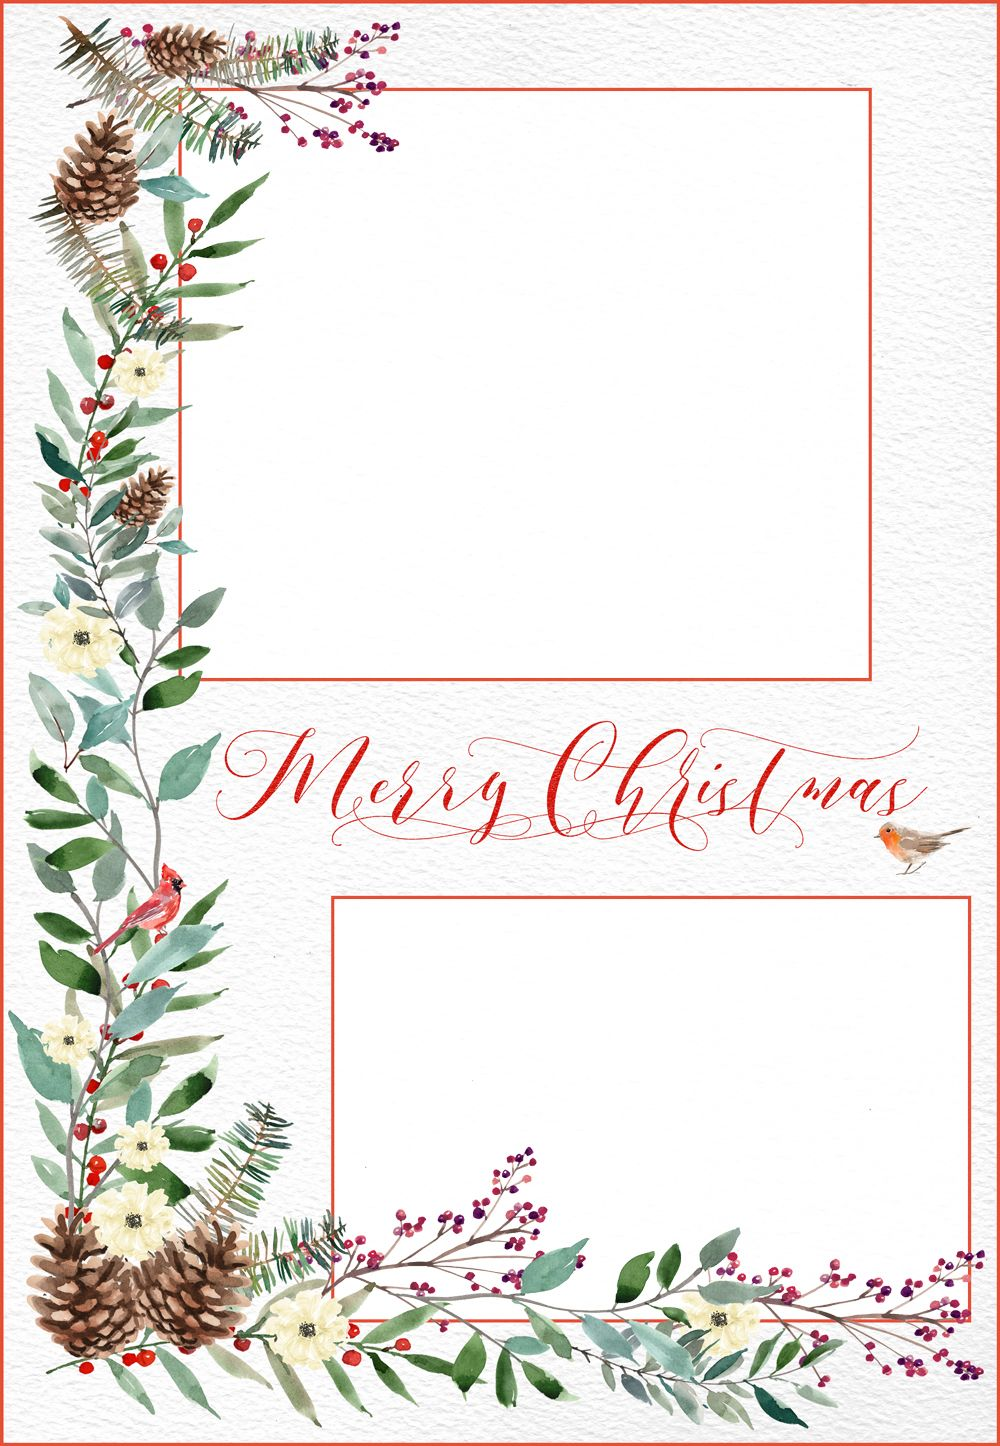 Woodland Christmas Card Template Free Digital Goodie Digital Christmas Cards Christmas Card Templates Free Free Christmas Photo Card Templates